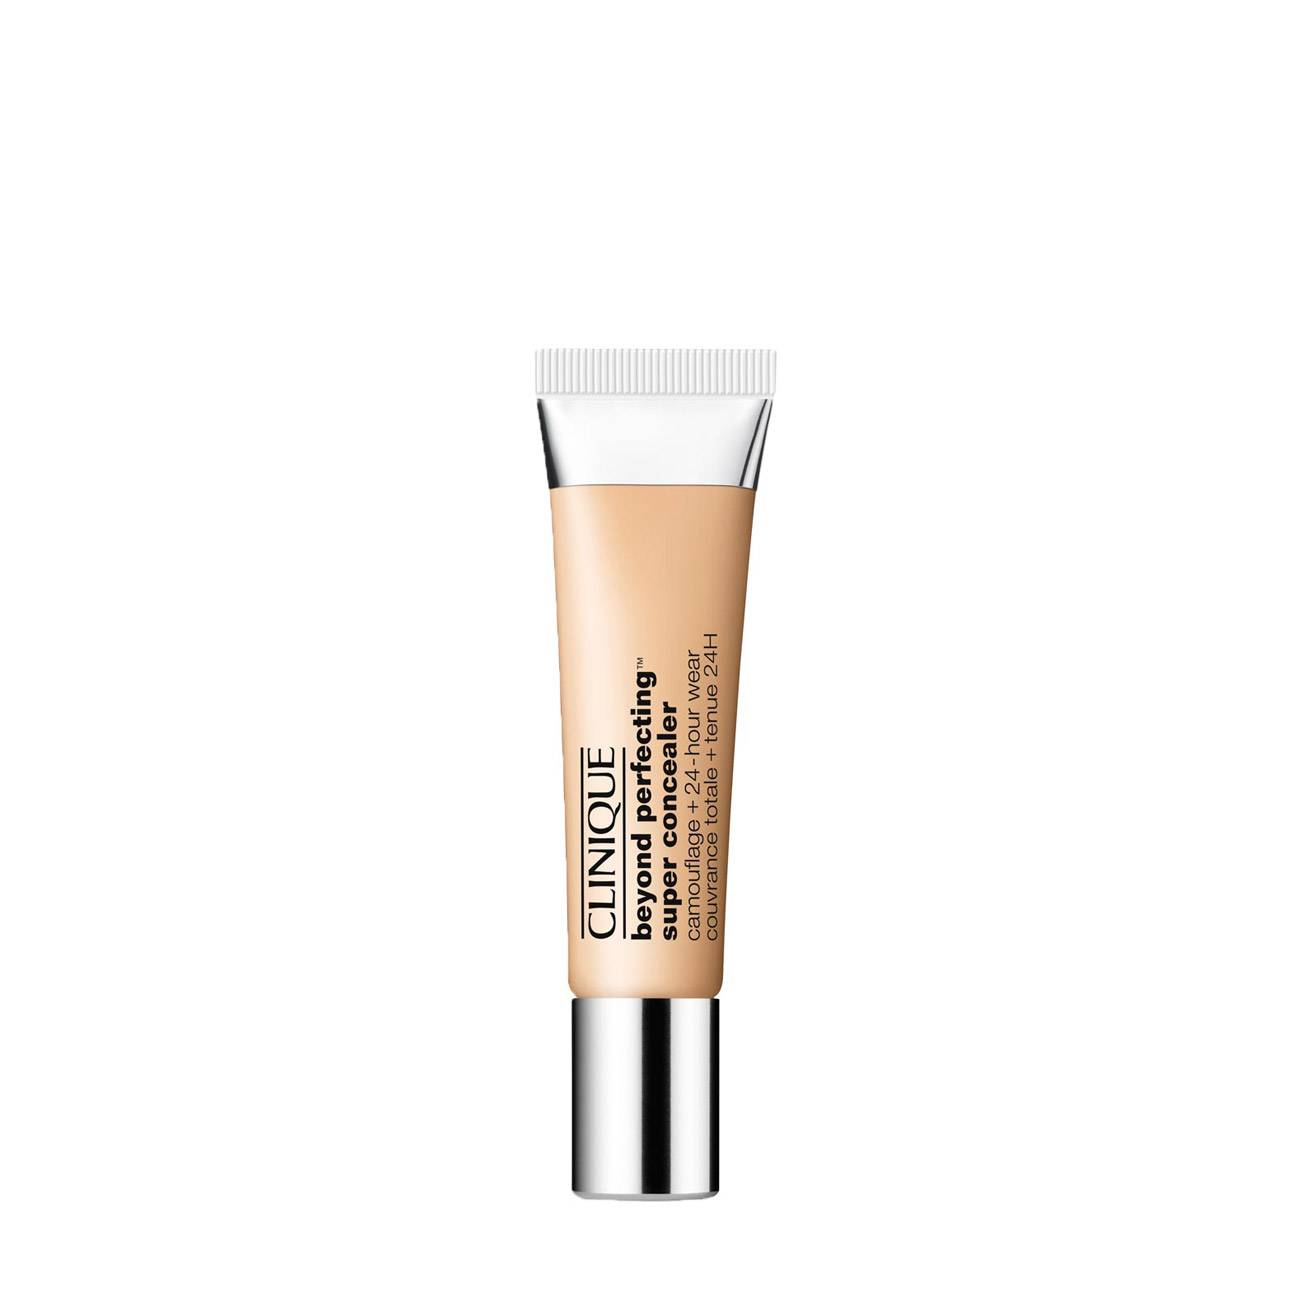 Beyond Perfecting Super Concealer 06 8ml Clinique imagine 2021 bestvalue.eu